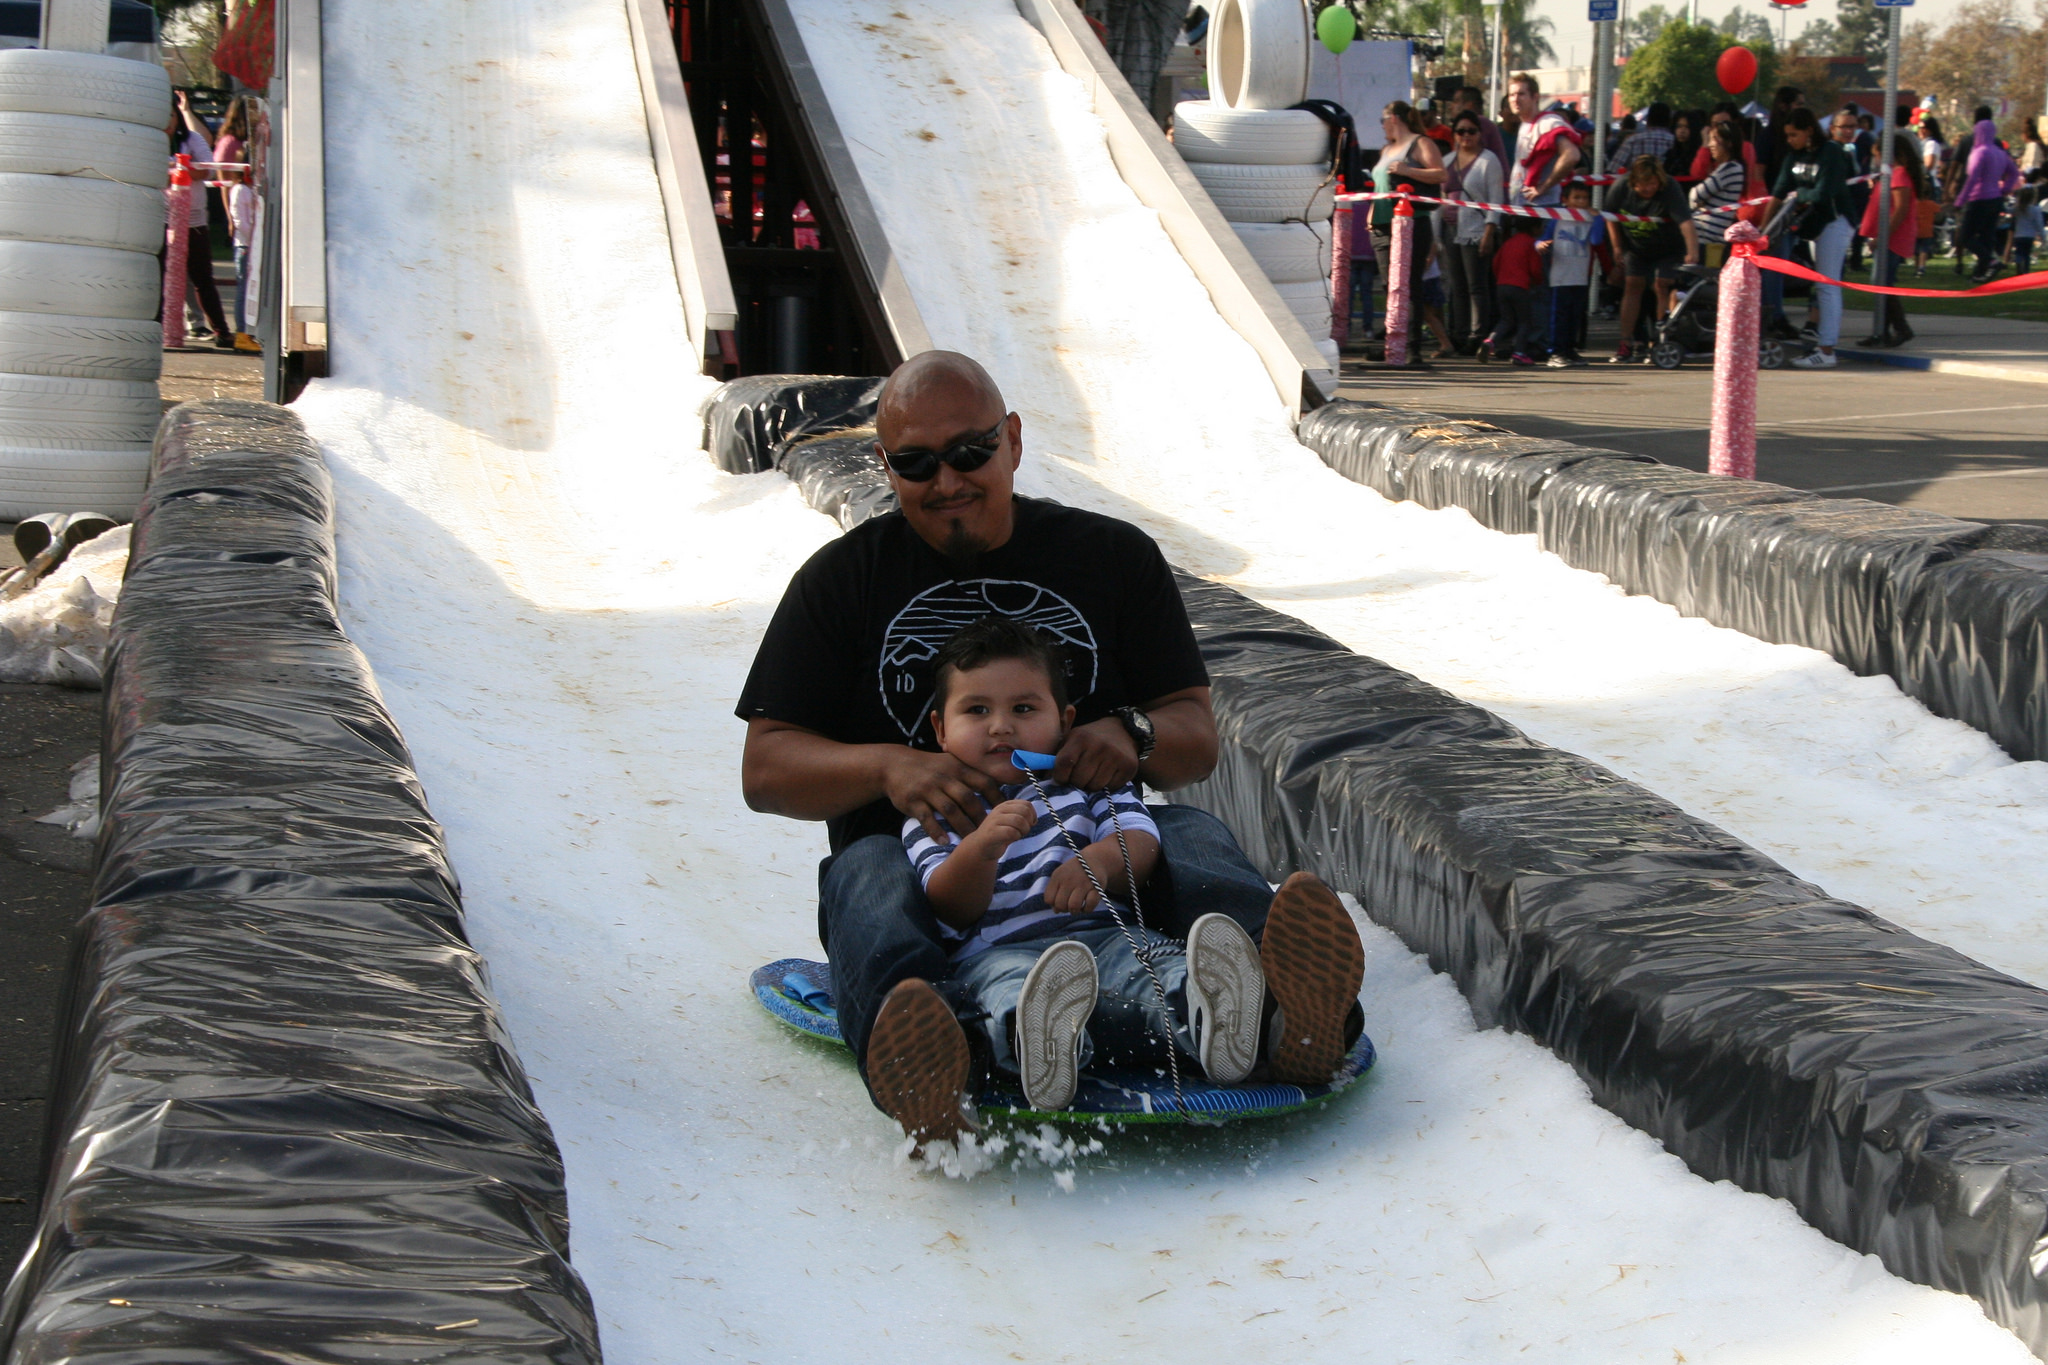 A real snow slide is a popular attraction at Norwalk's SnowFest. Photo courtesy City of Norwalk